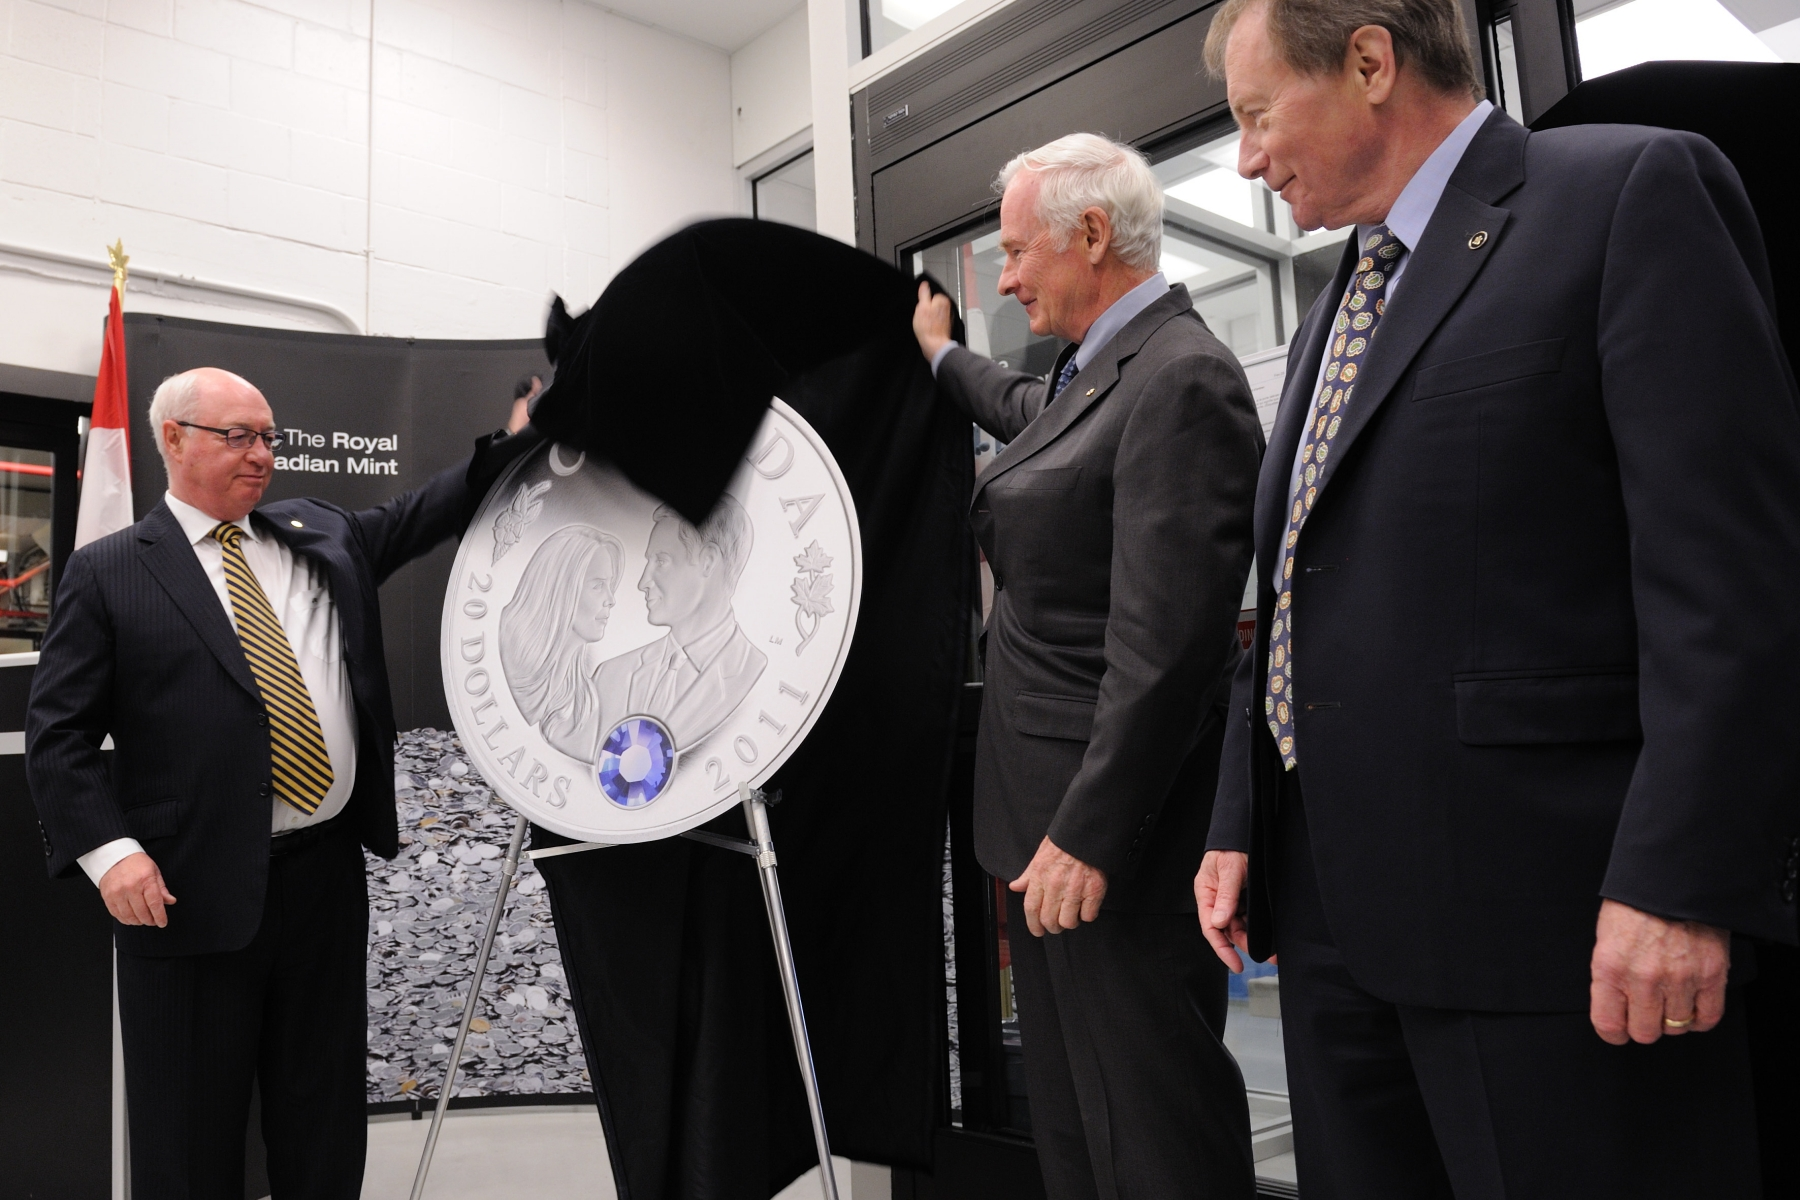 The Governor General and Chairperson of the Board of Directors at the Royal Canadian Mint Mr. James Love (left) unveiled together the first Royal Wedding commemorative coin, a 20 dollar pure silver coin featuring an eye-catching sapphire-coloured crystal enhancement symbolizing the world-renowned 18-carat sapphire engagement ring which Prince William presented to his fiancée in October 2010.